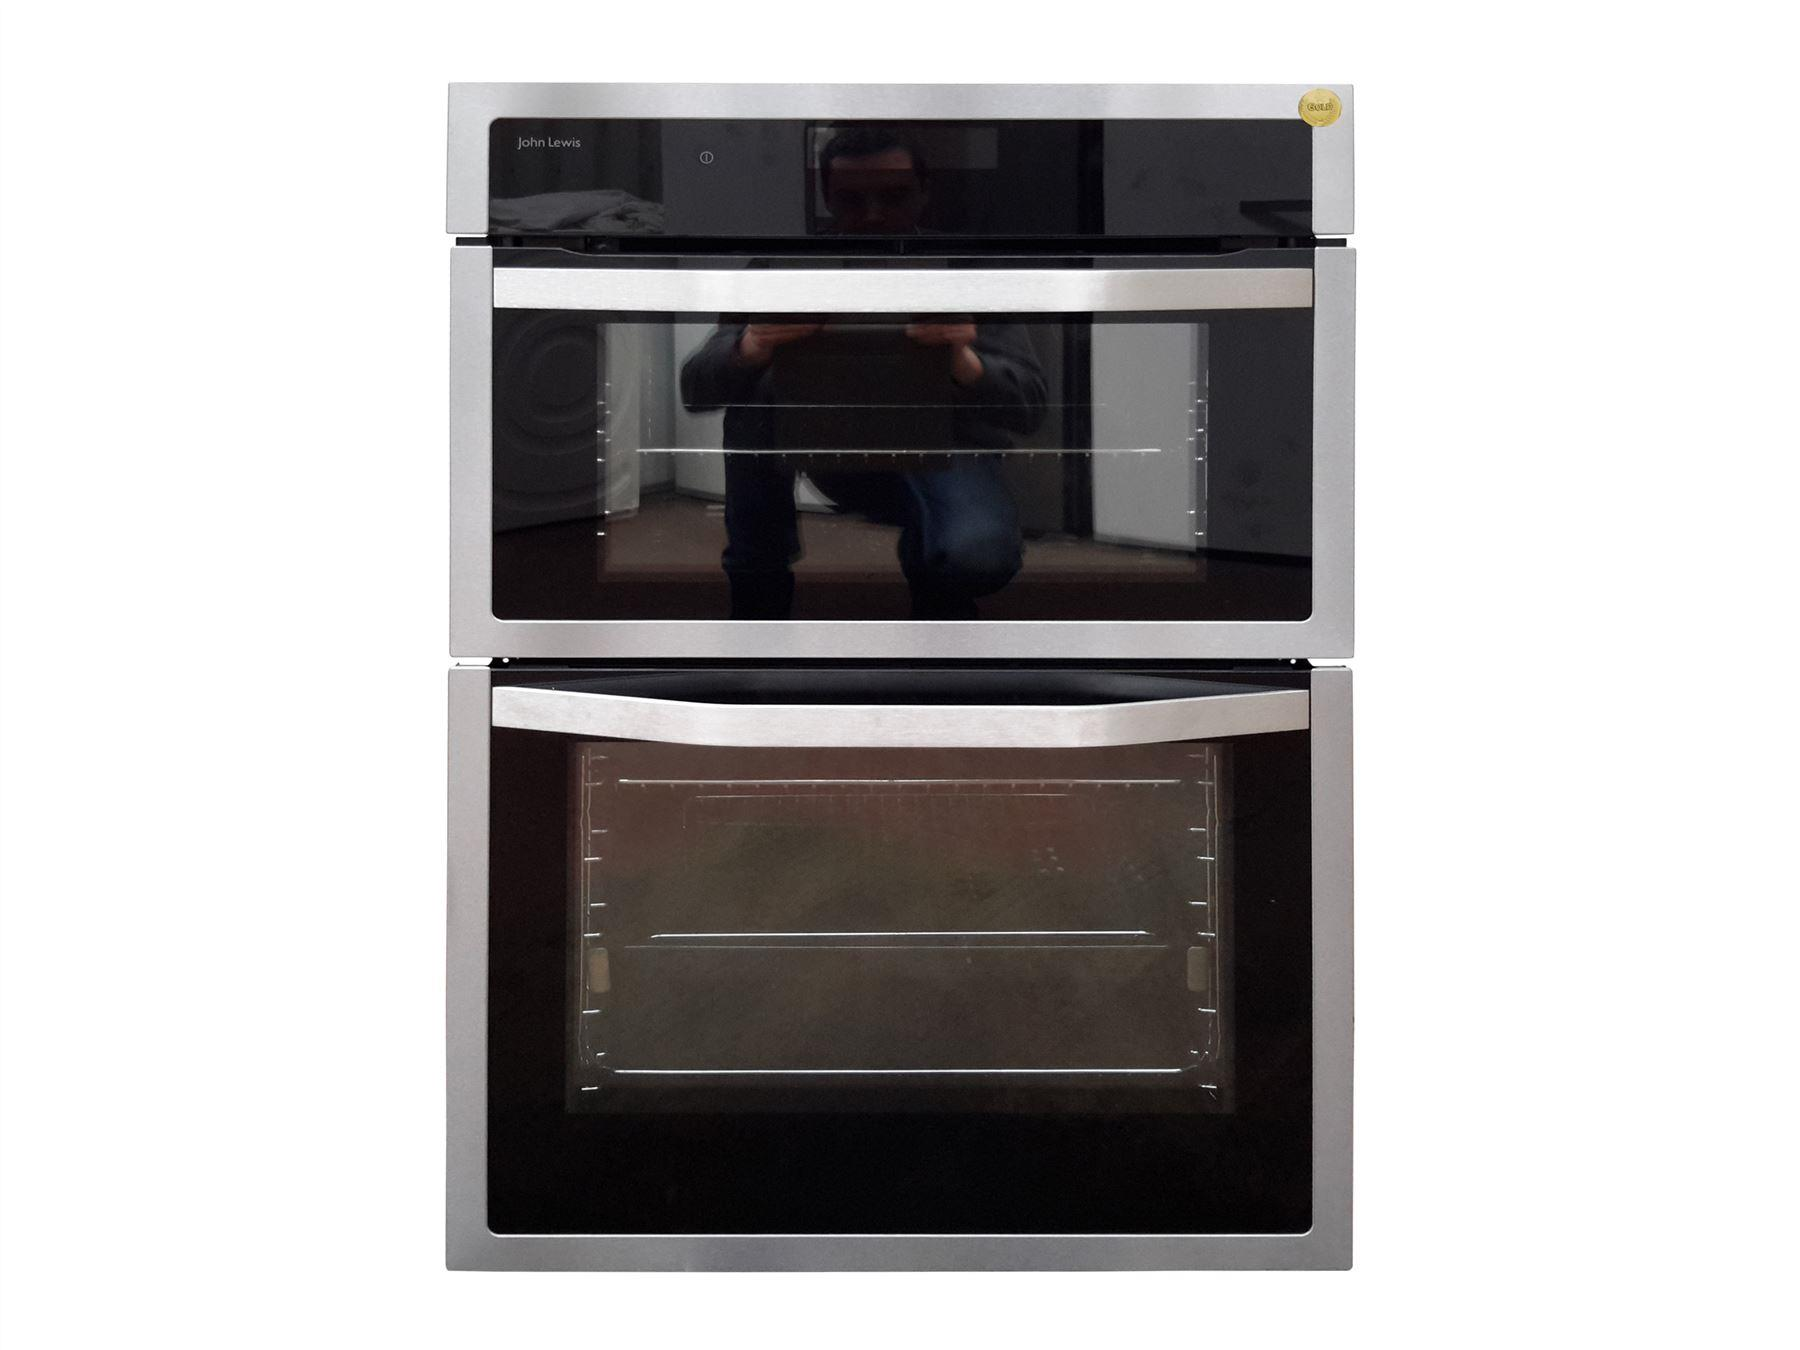 John Lewis Jlbido915x Double Electric Oven Stainless